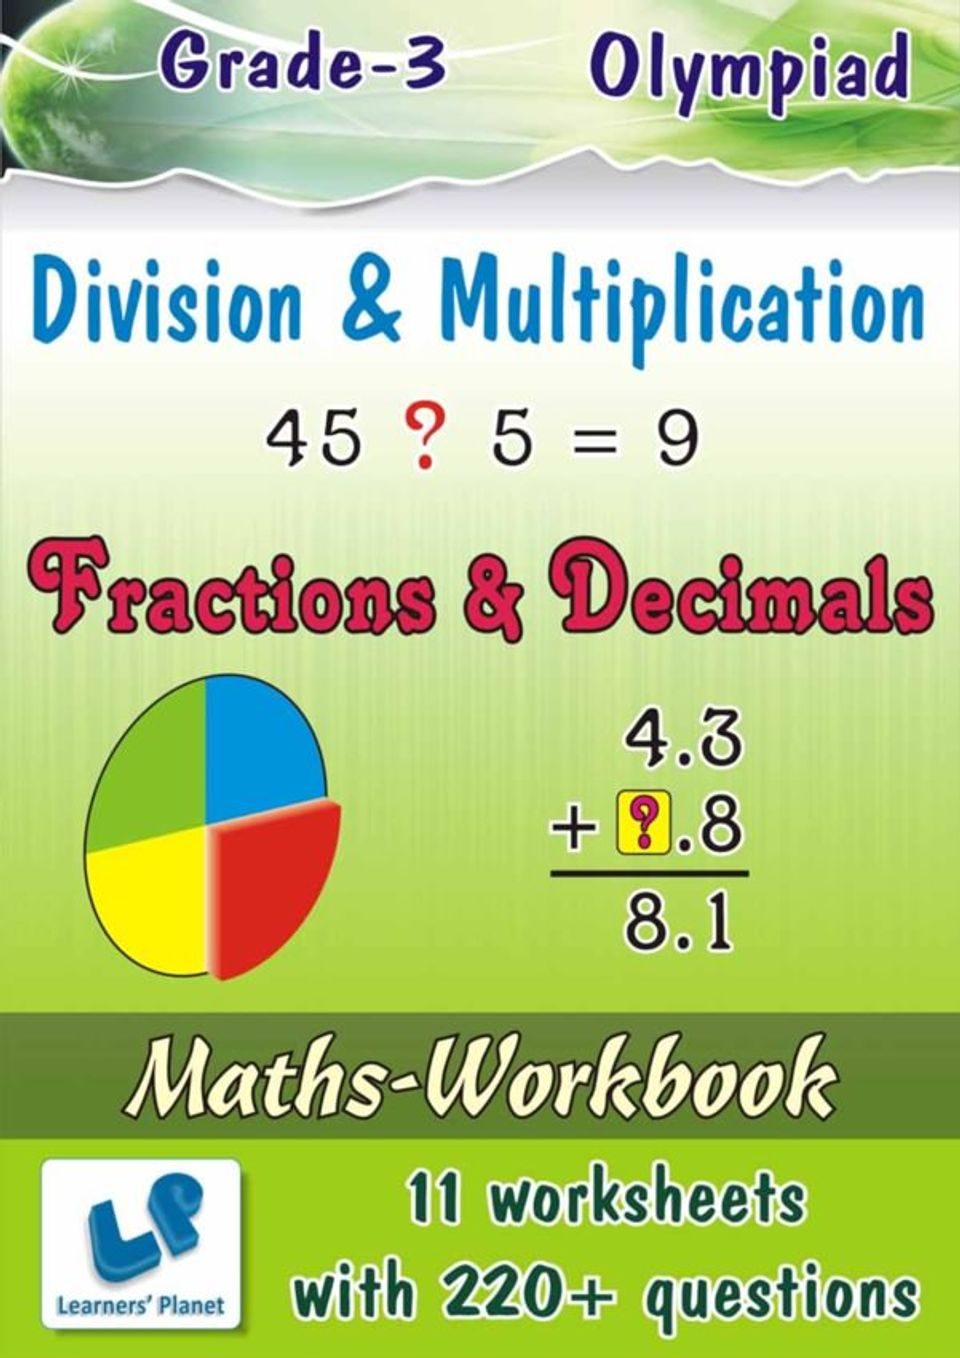 hight resolution of Get your digital copy of Grade-3-Maths-Olympiad-Workbook-3 issue